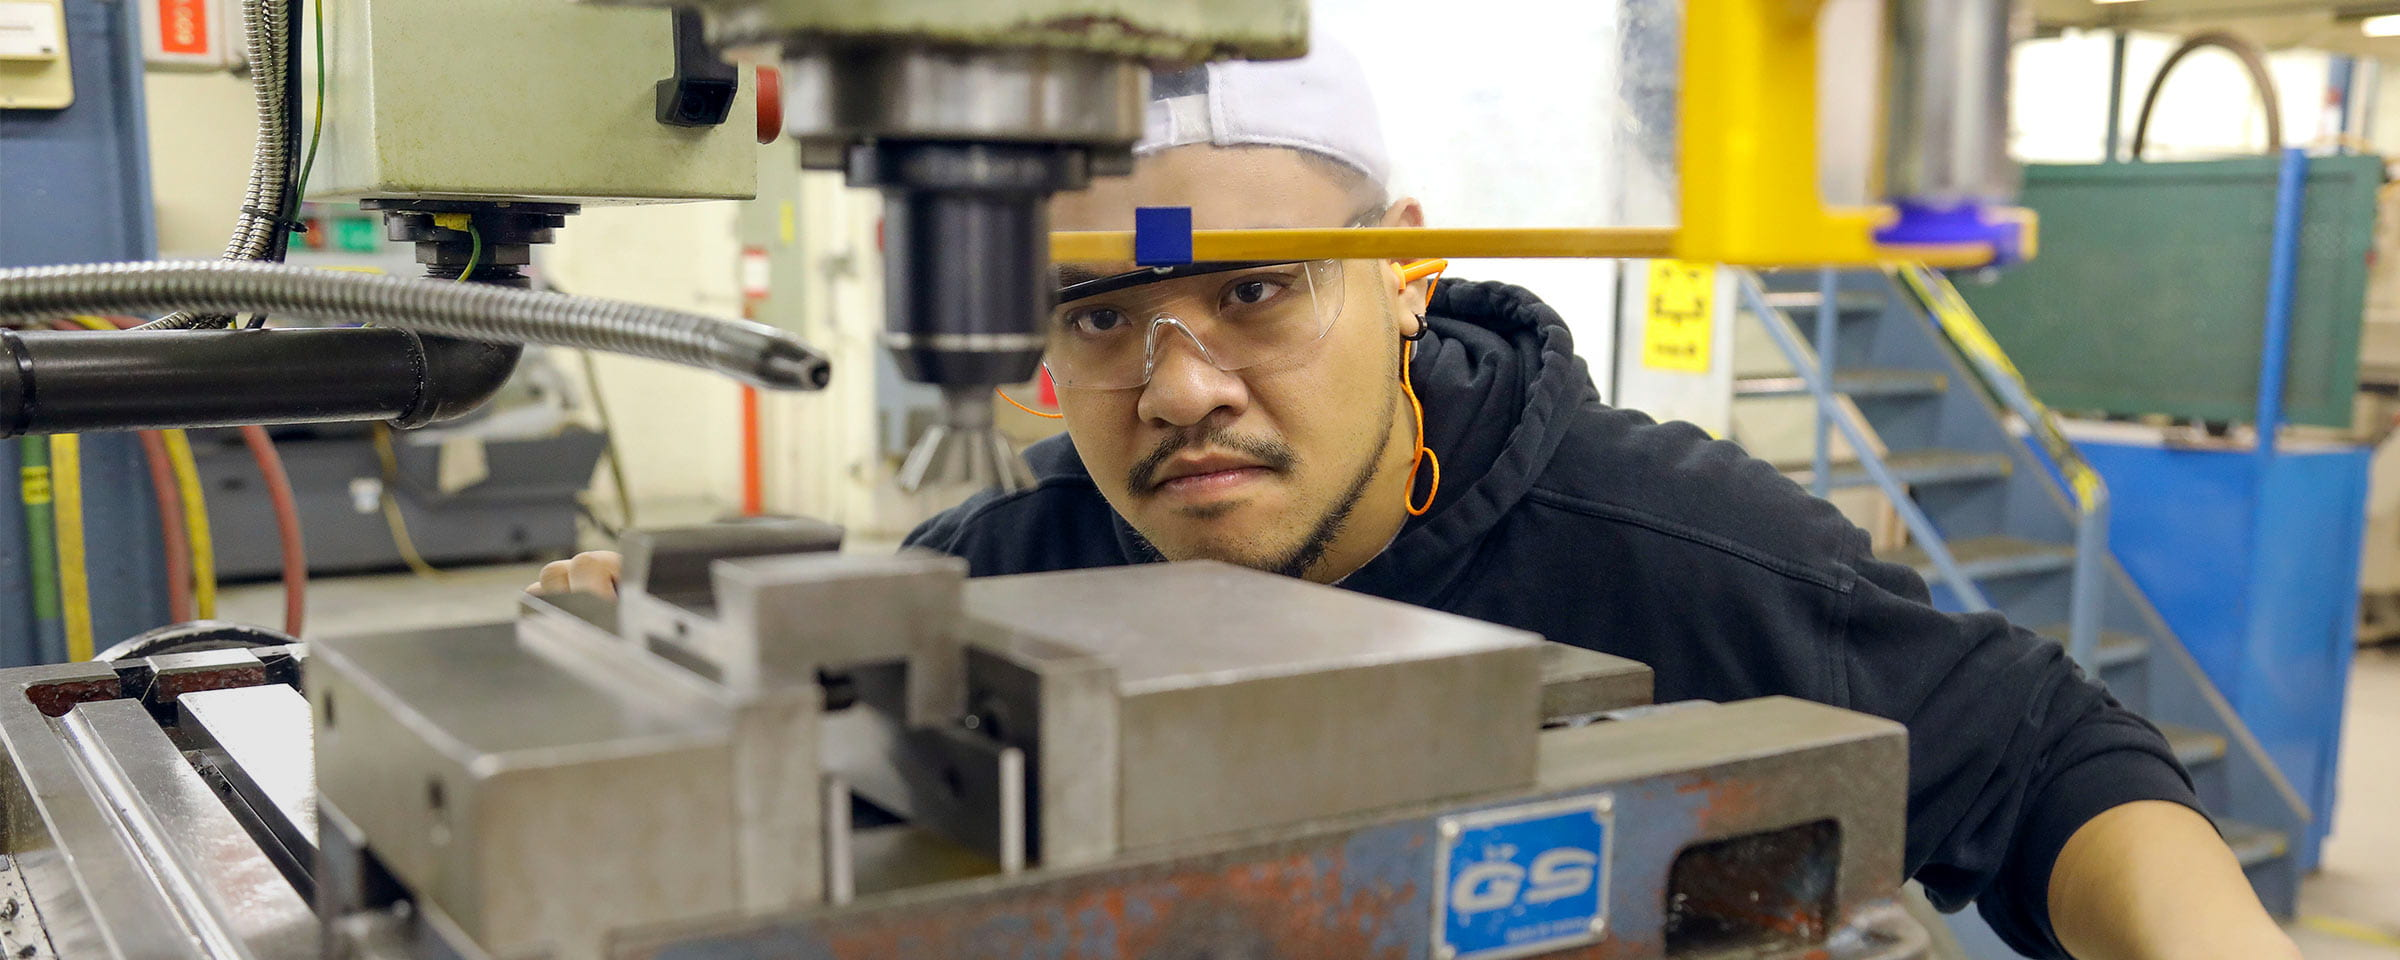 Machinist and manufacturing student at work